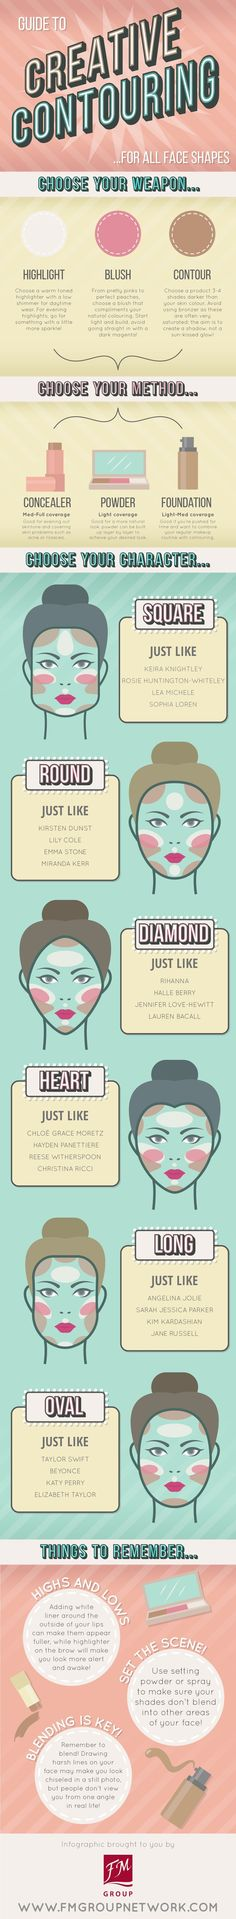 Guide to creative contouring for all face shapes. #beauty #makeup #contouring